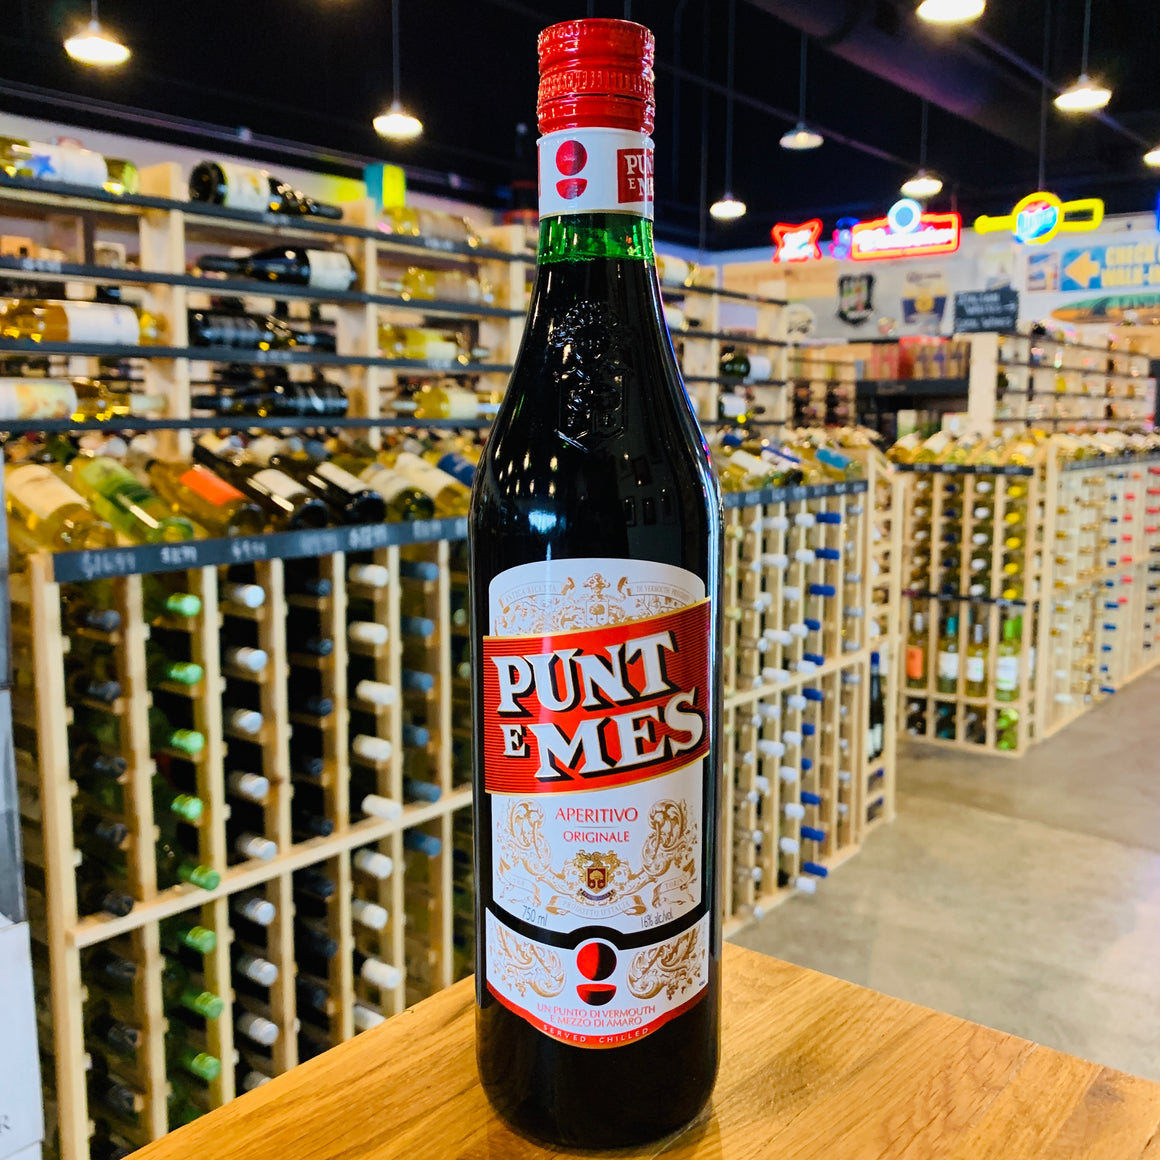 PUNT E MES VERMOUTH 750ML